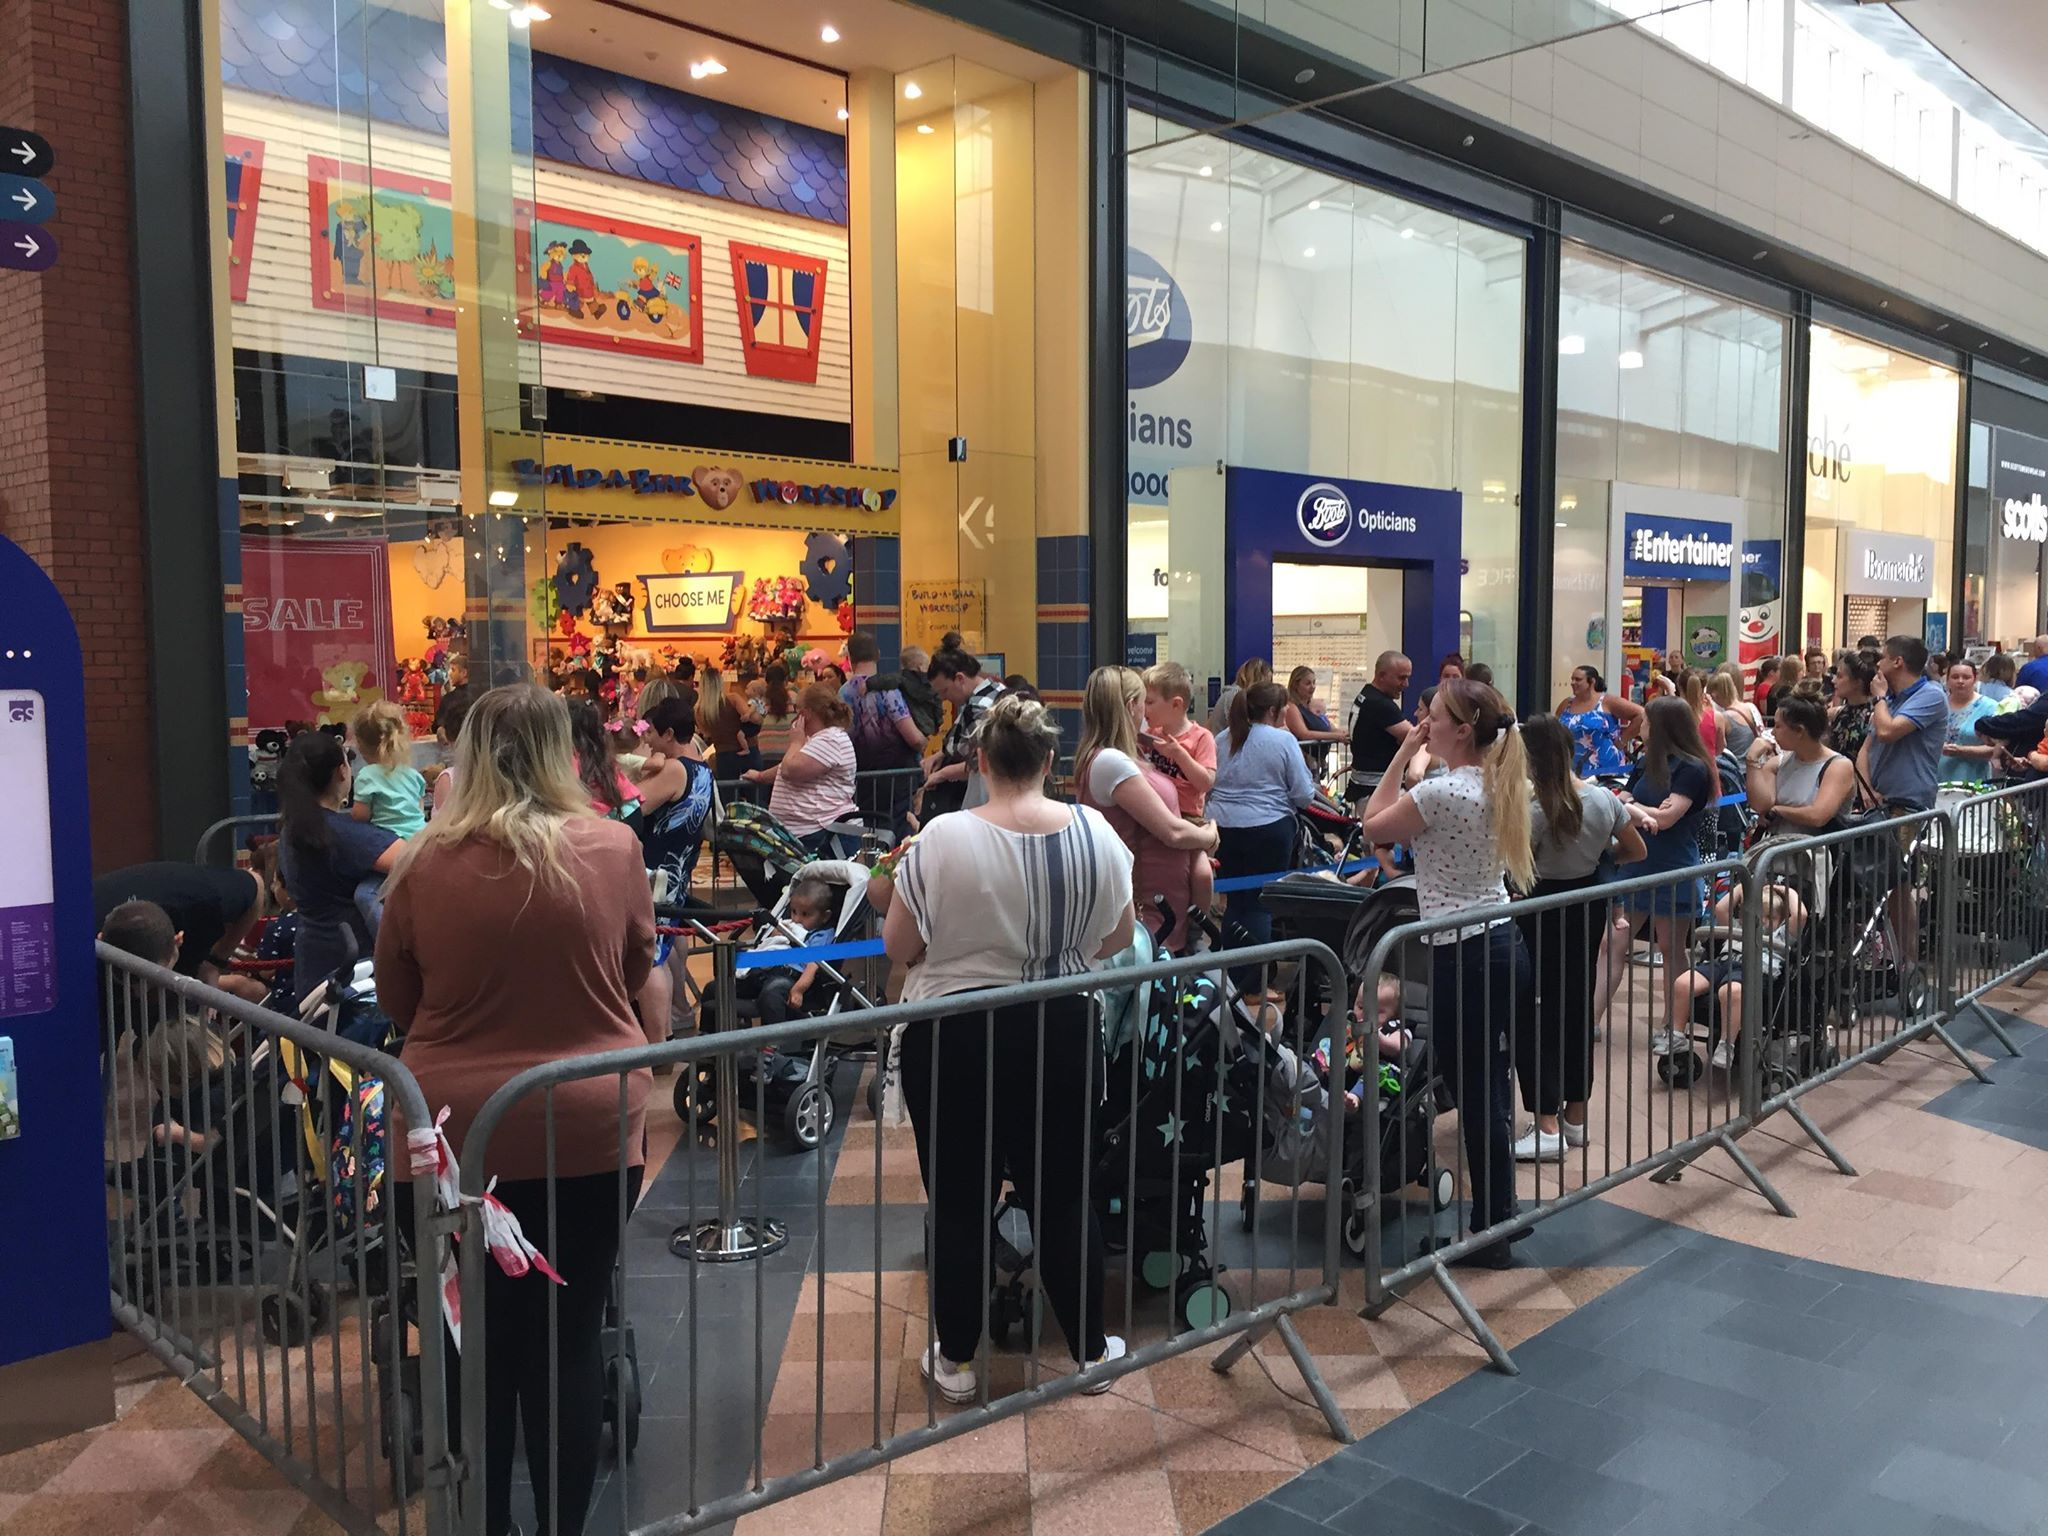 Build-A-Bear cancels pay-your-age day as crowds swamp stores